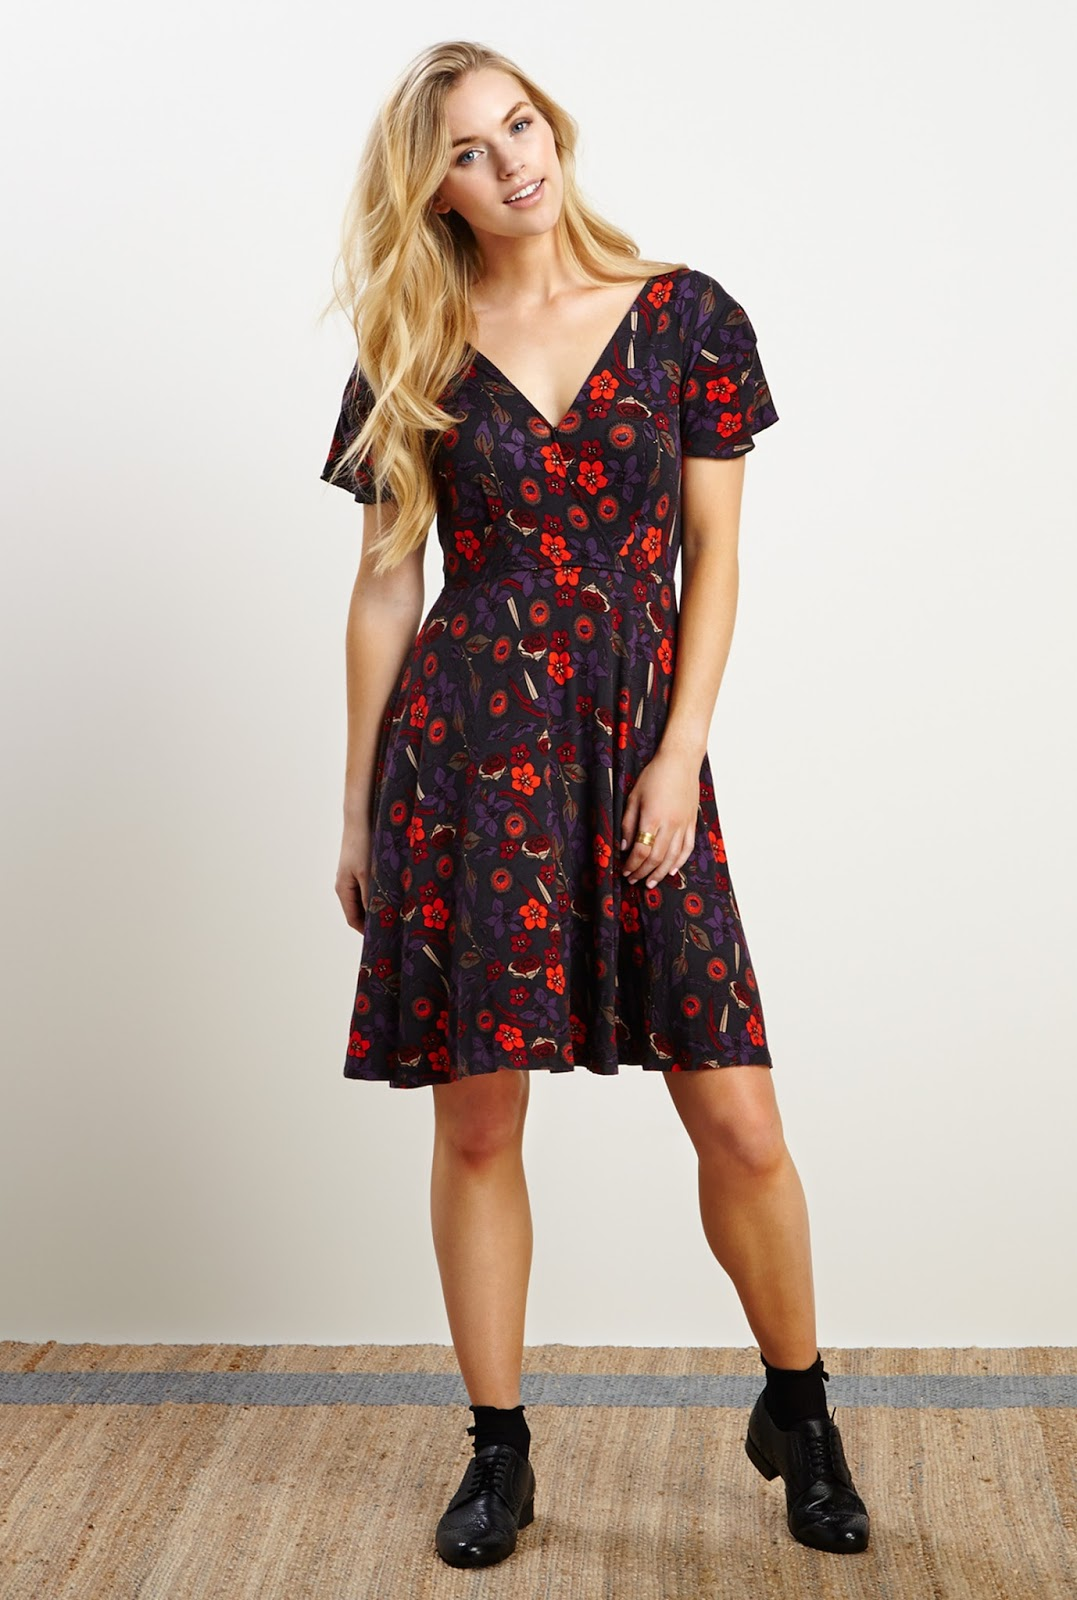 49e2315254 Autumn Garden Party - Floral Dresses for Fall! - Fashion Should Be Fun